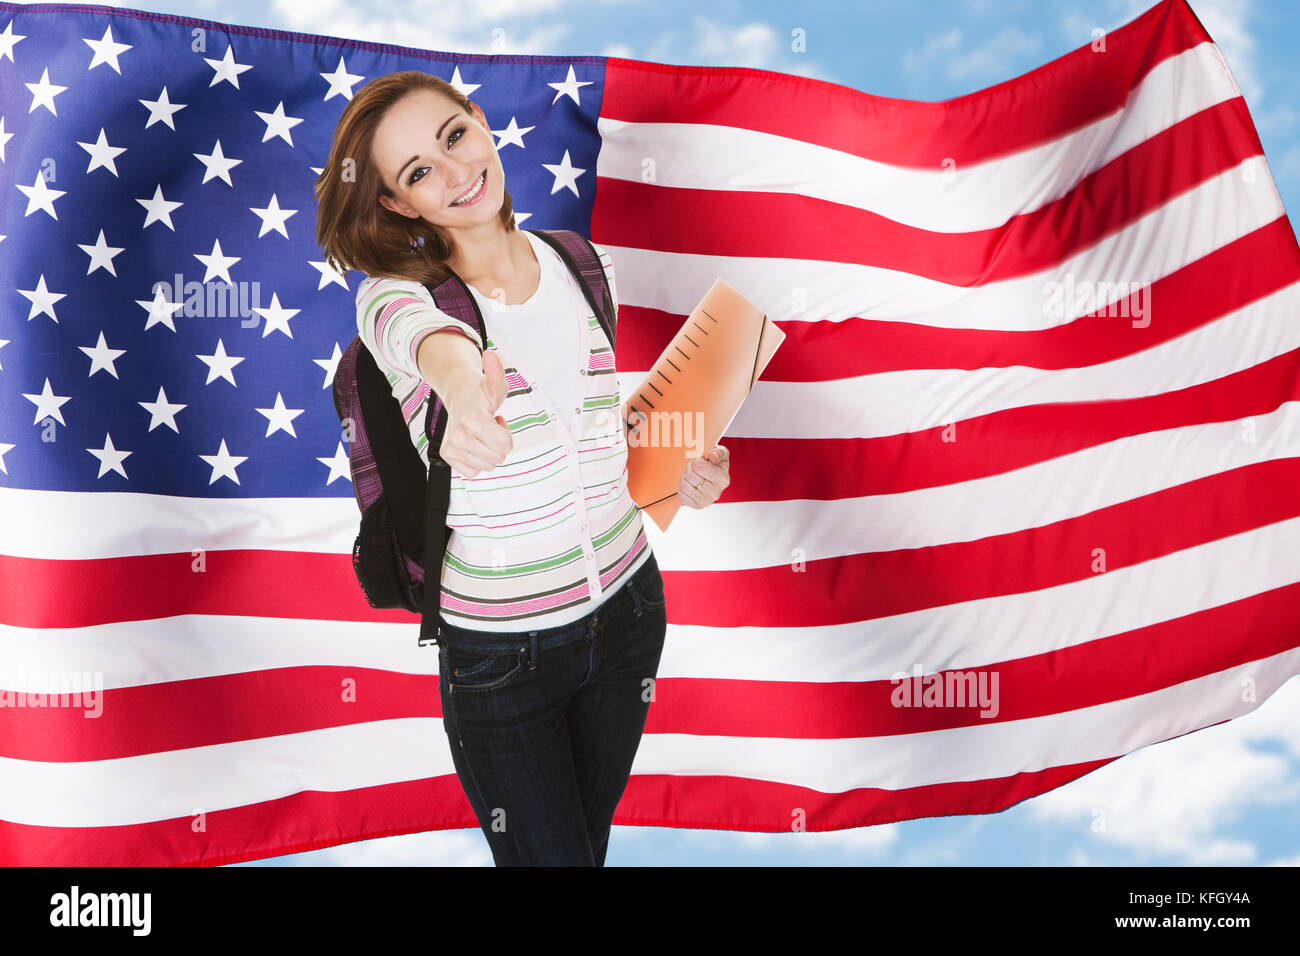 Young American Female Student Gesturing Thumb Up Sign - Stock Image